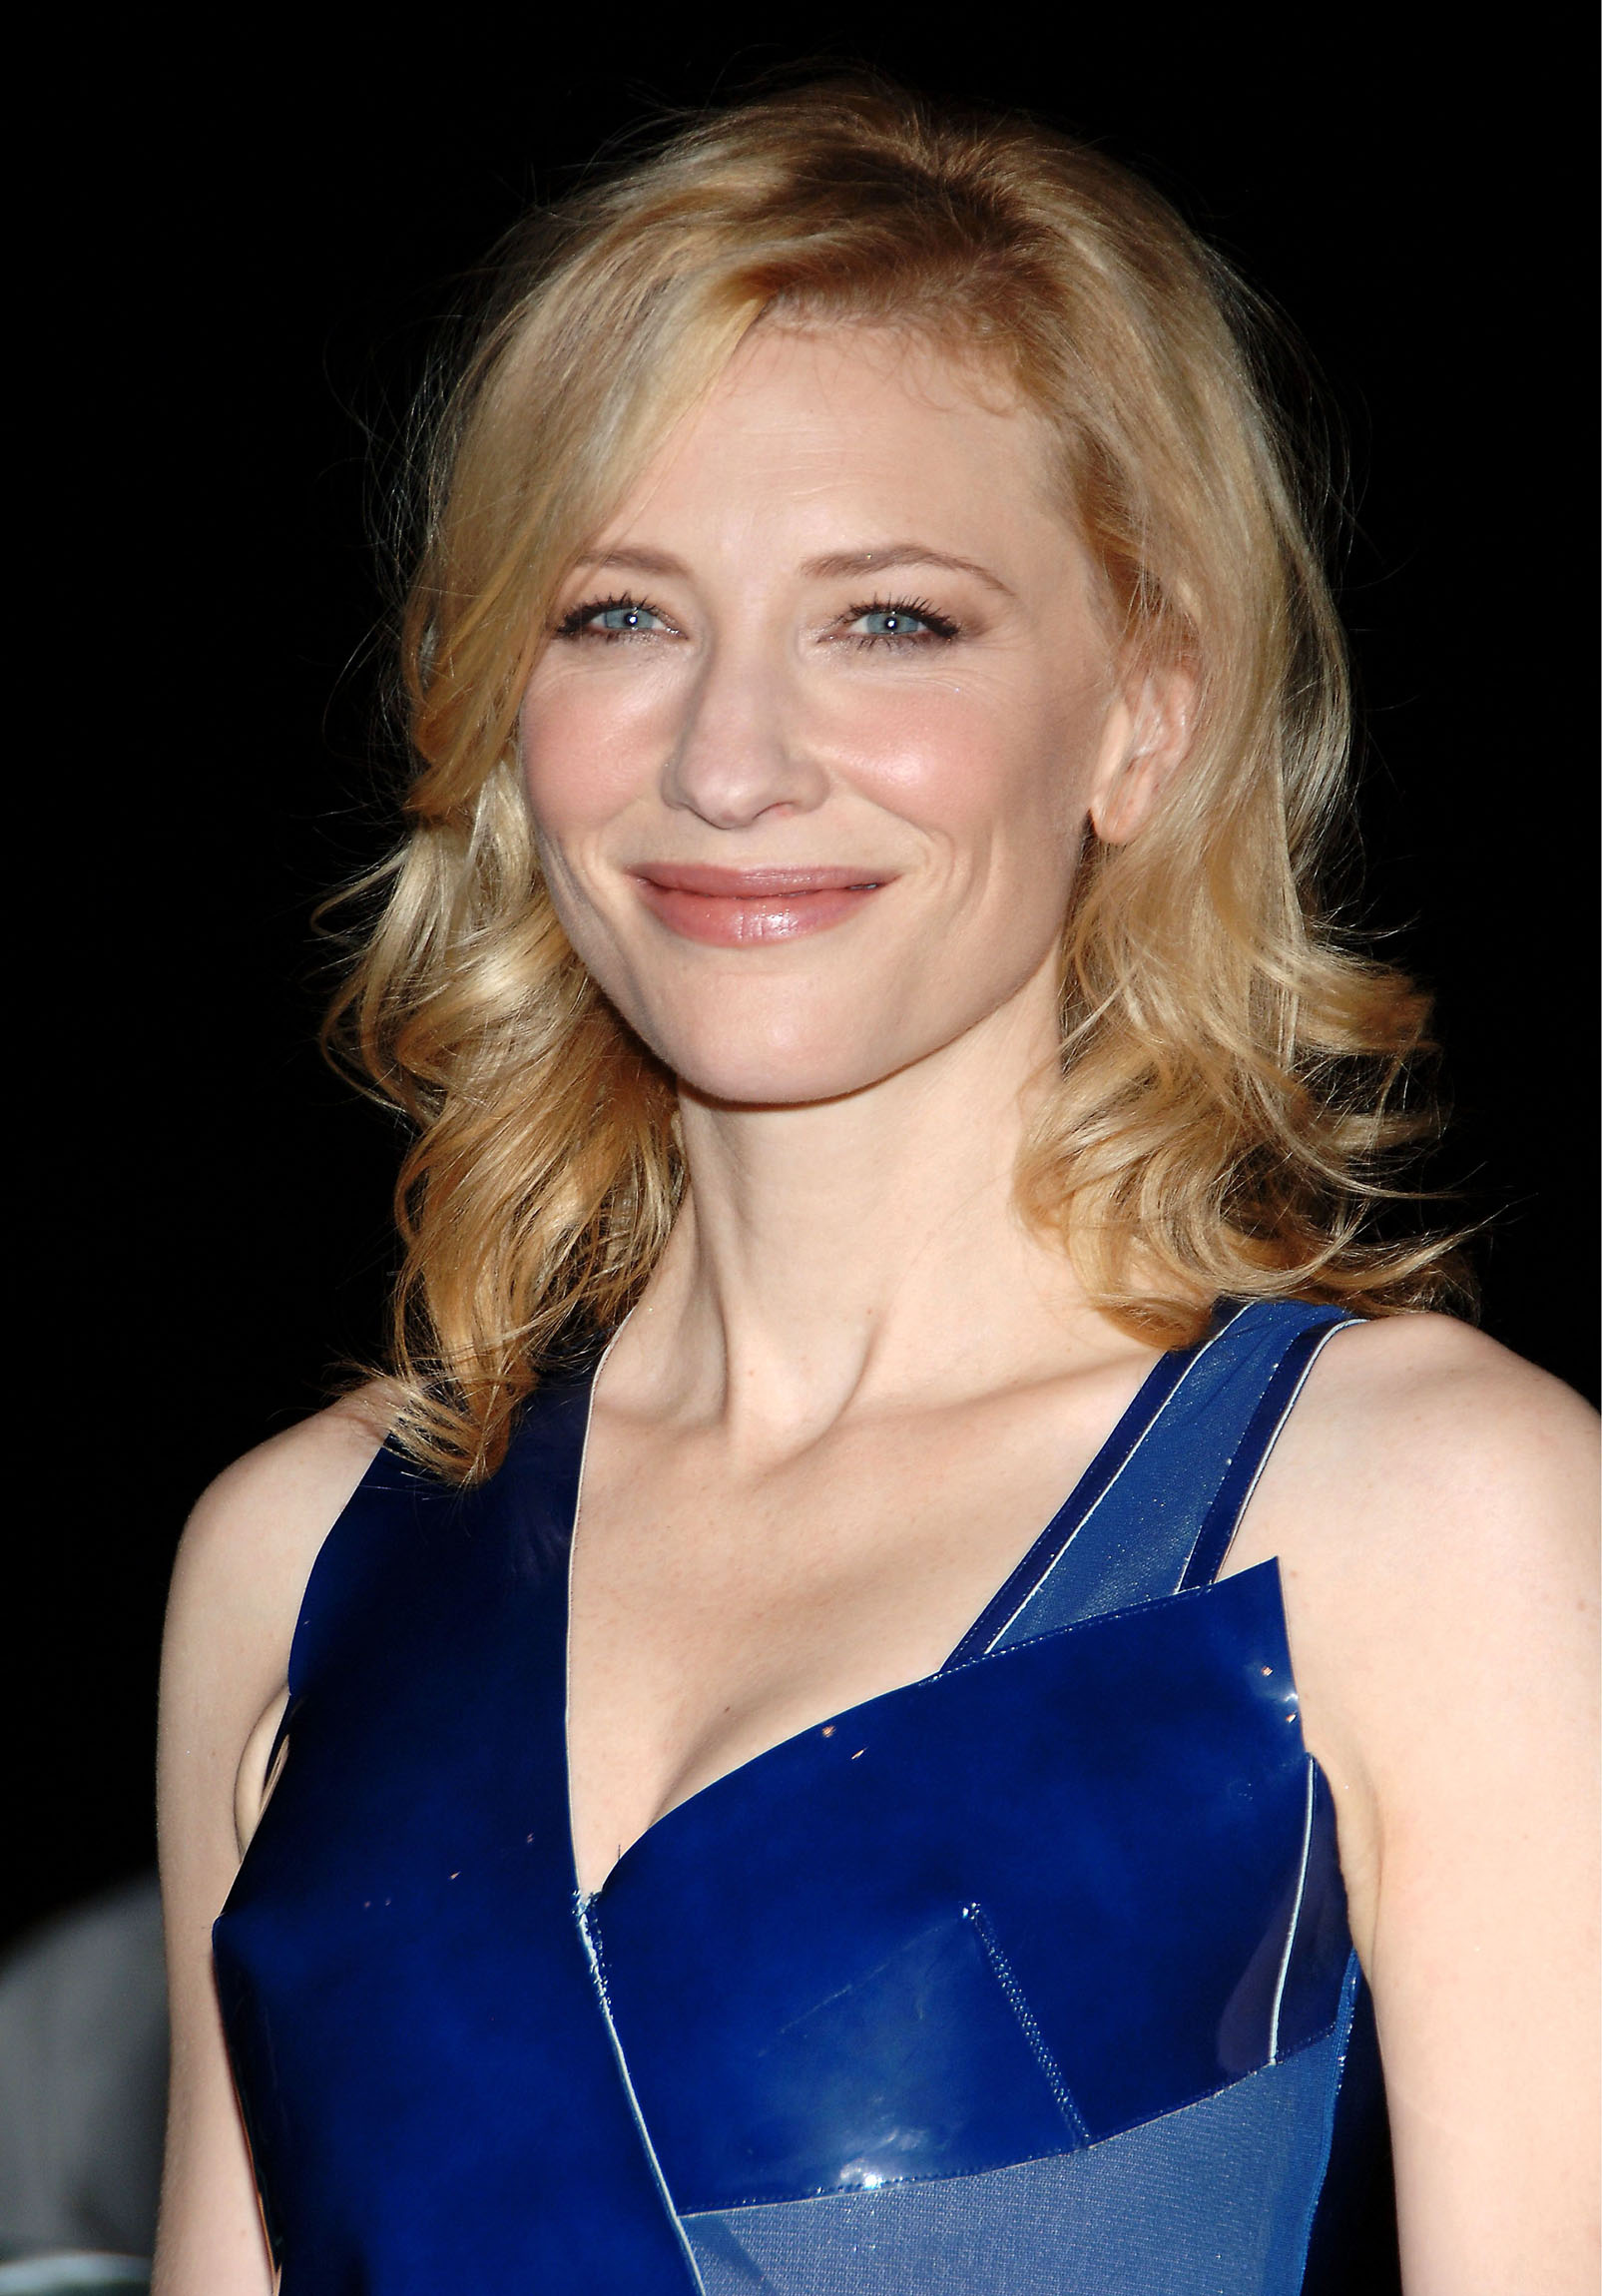 Cate Blanchett photo #240933